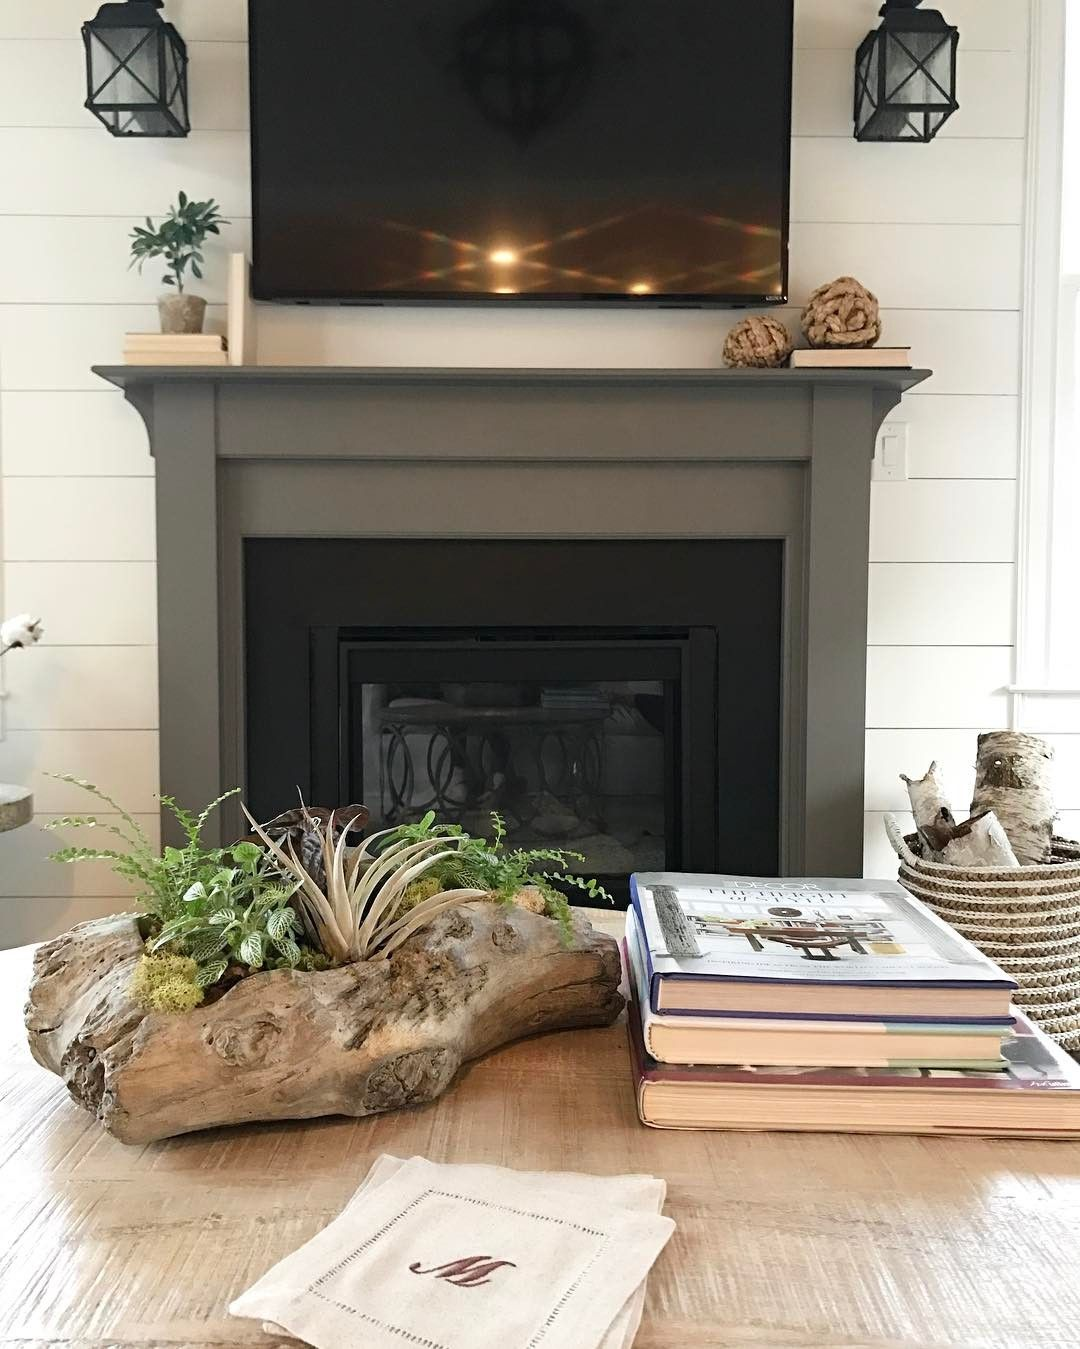 the fireplace surround is painted in sherwin williams gauntlet